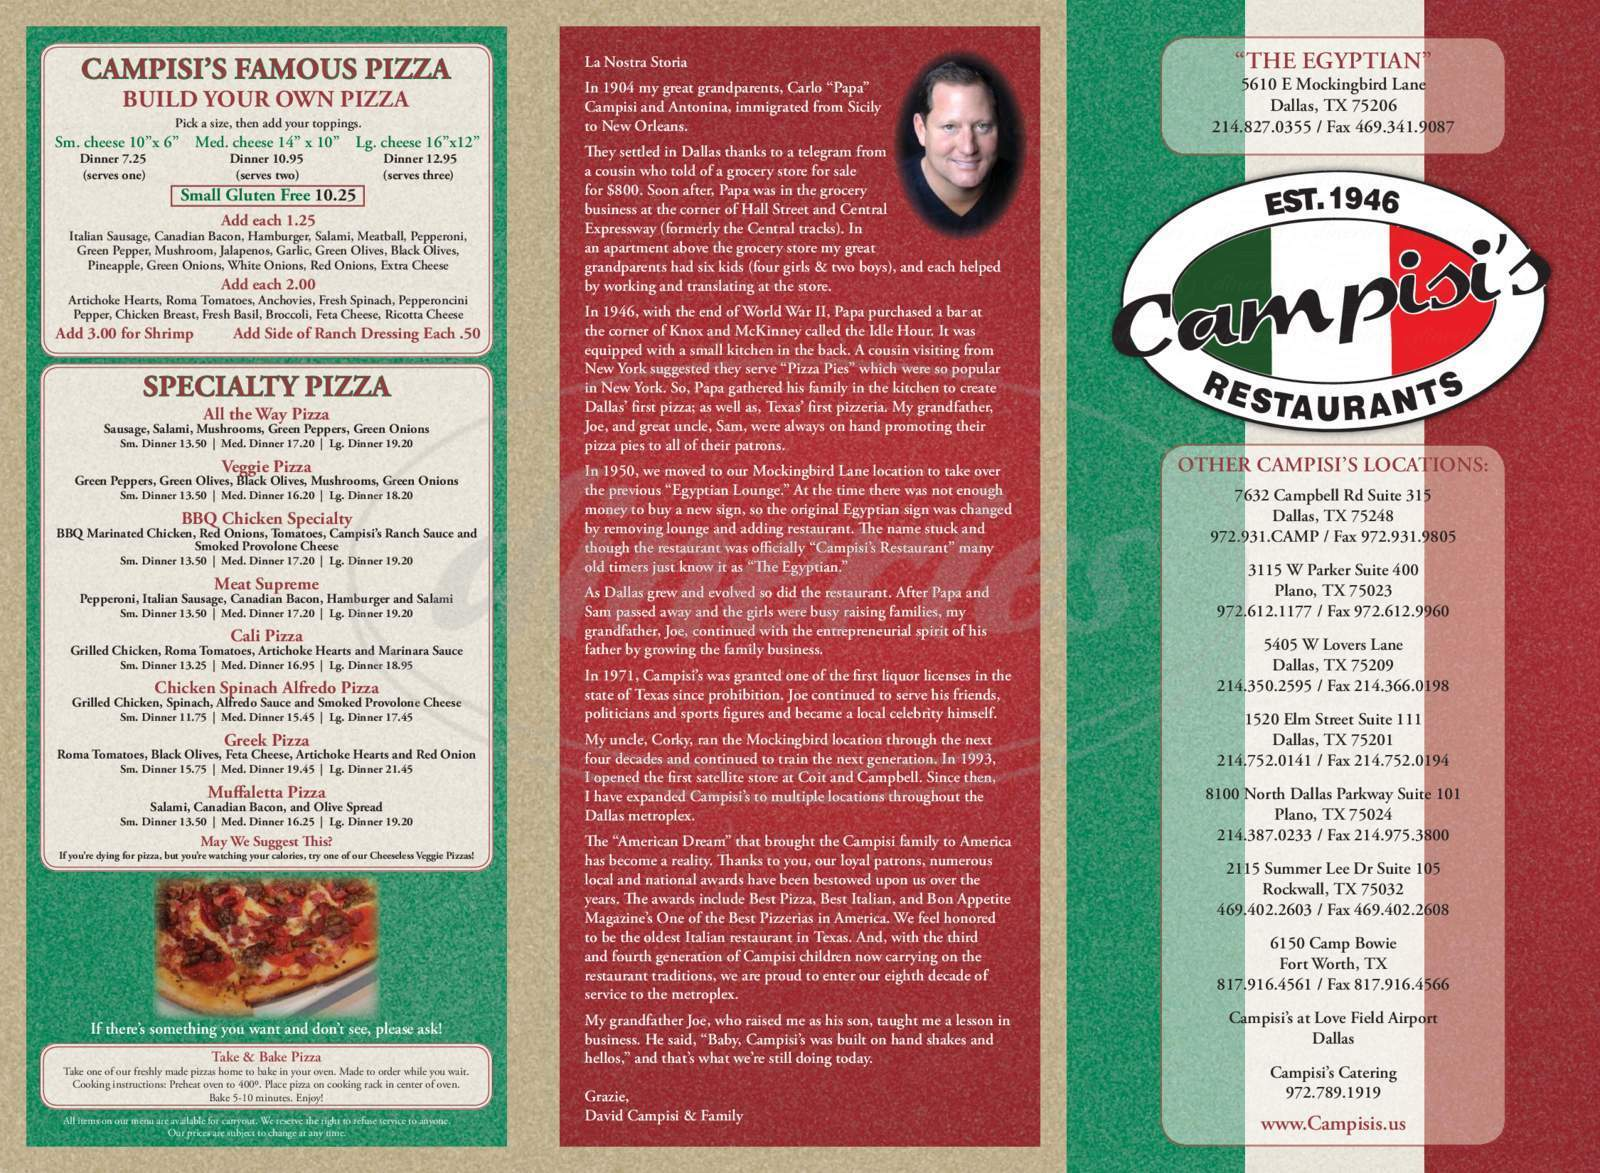 menu for Campisi's Egyptian Lounge